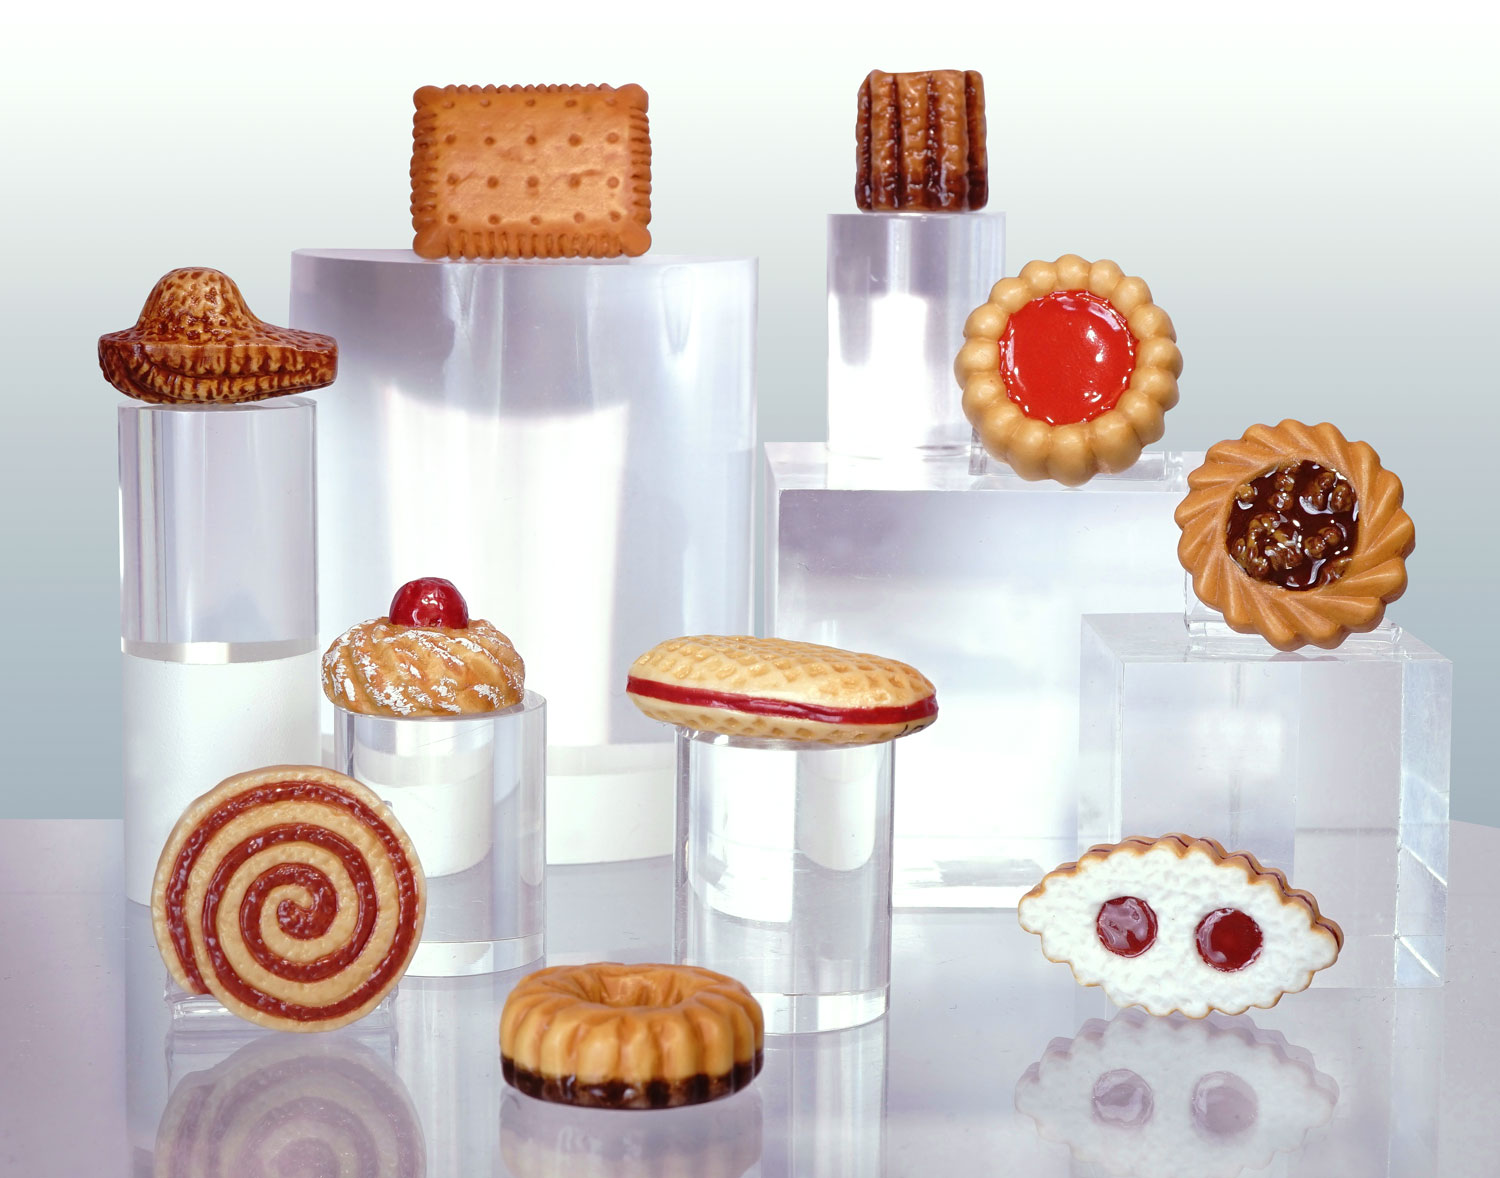 Biscuits et Gourmandises - Collection de fèves Prime pour Épiphanie 2021